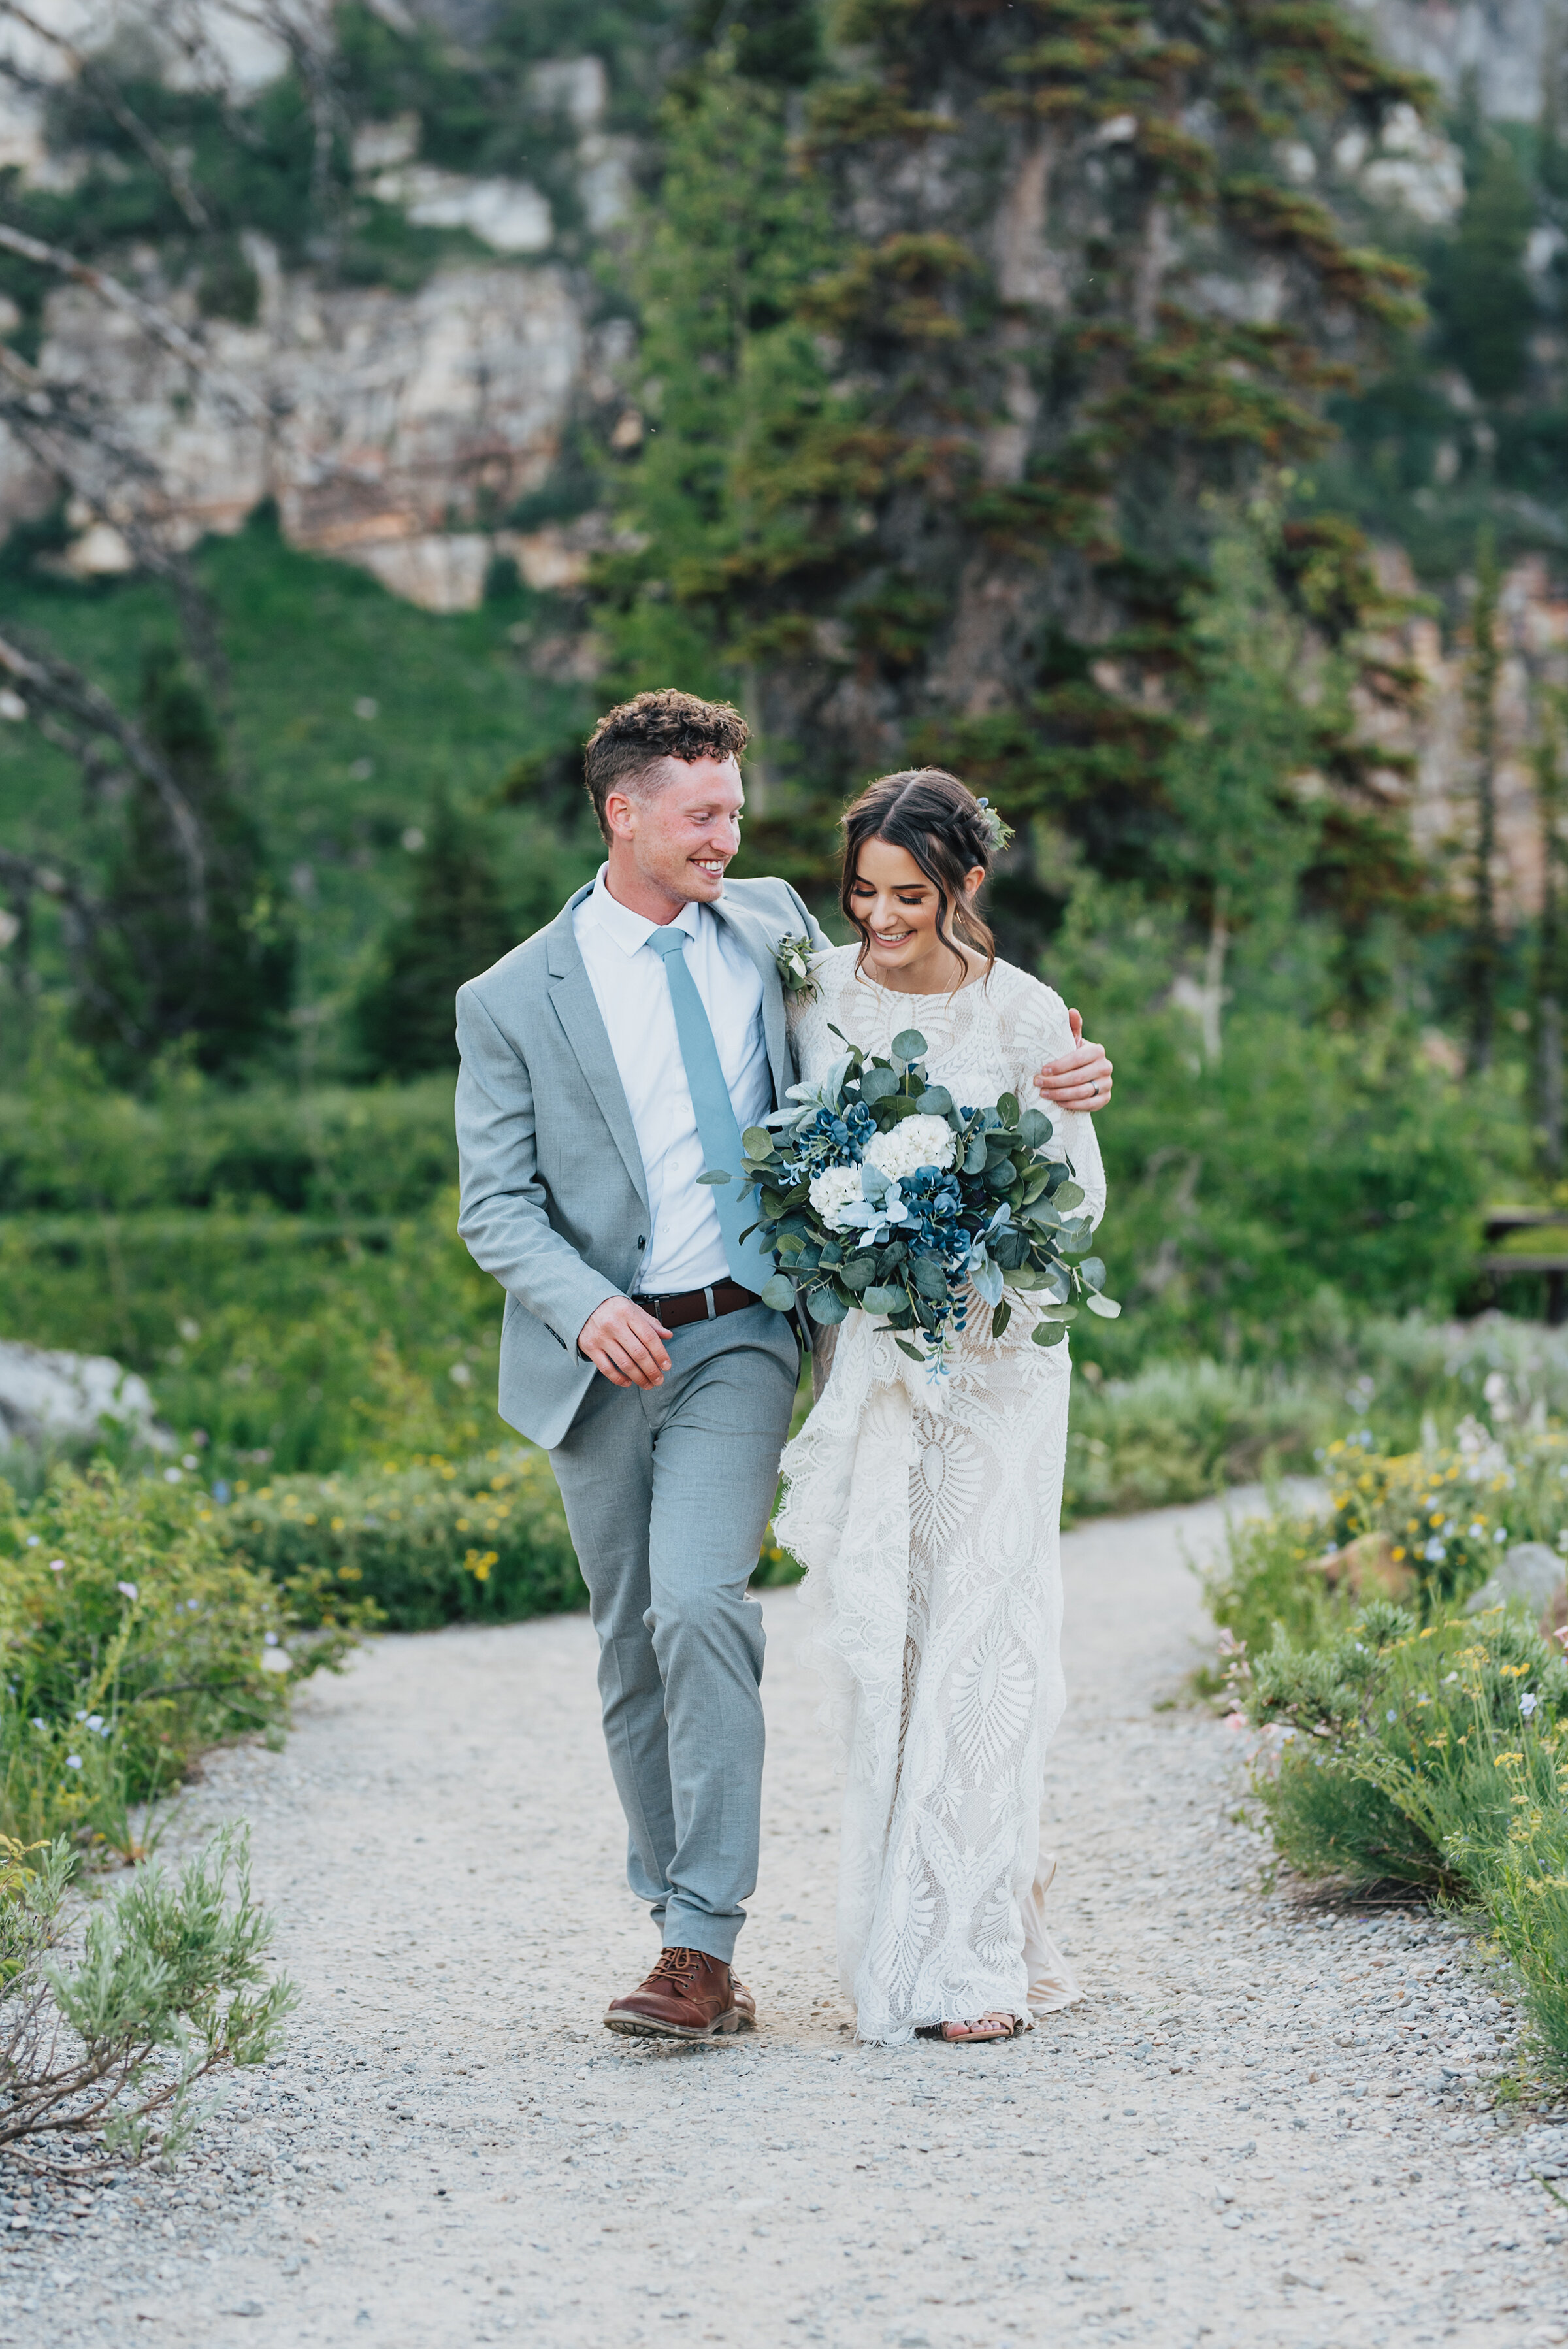 Bride and Groom bursting with love during their formals up Logan canyon. Kristi Alyse photography Logan Utah wedding photographer forest nature dreamy formals Logan canyon Tony Grove scenic bridals Northern Utah photographer Utah brides bride and groom Cache Valley #kristialysephotography #loganutahphotographer #tonygrove #logancanyon #utahweddingphotographer #bridals #formals #wildflowers #northernutah #utahbrides